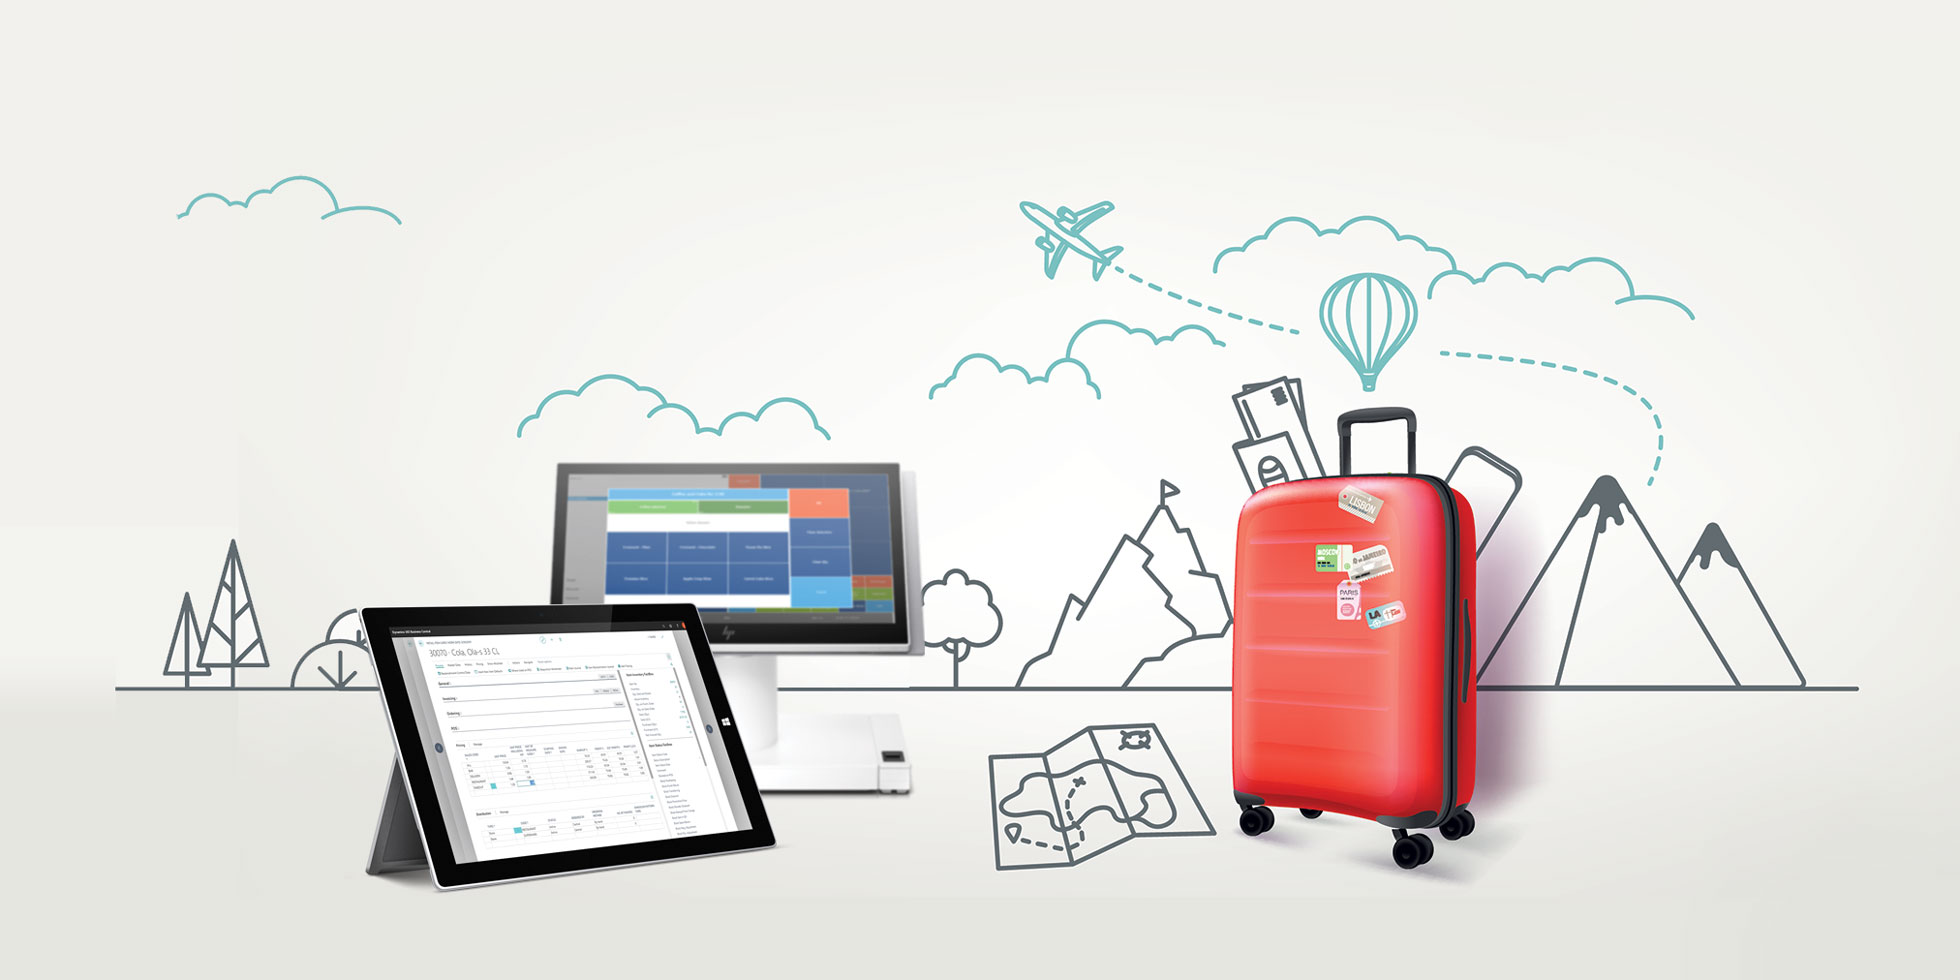 Trains, planes and ferry boats: finding the right software solution for each travel retail business